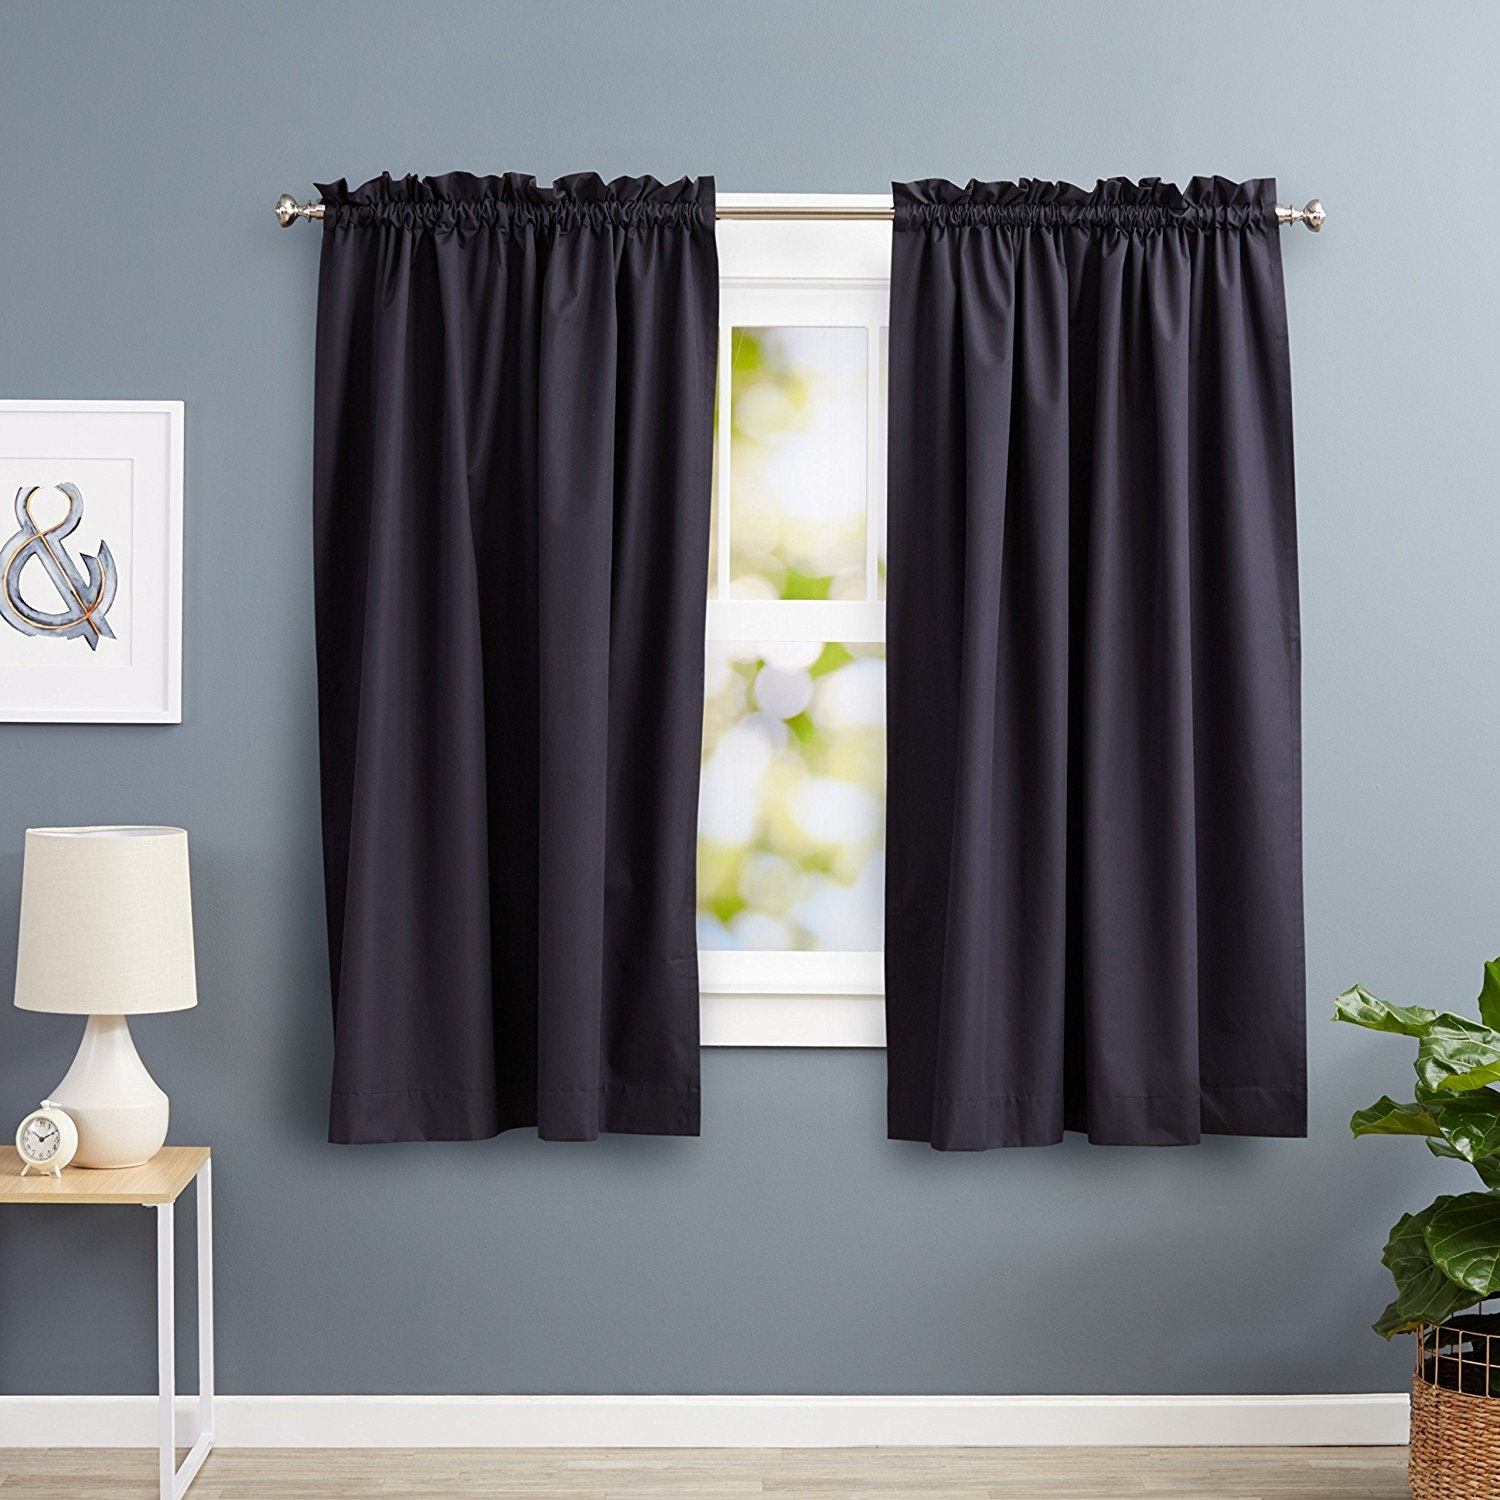 36 Inch Room Darkening Curtains The 7 Best Blackout Curtains